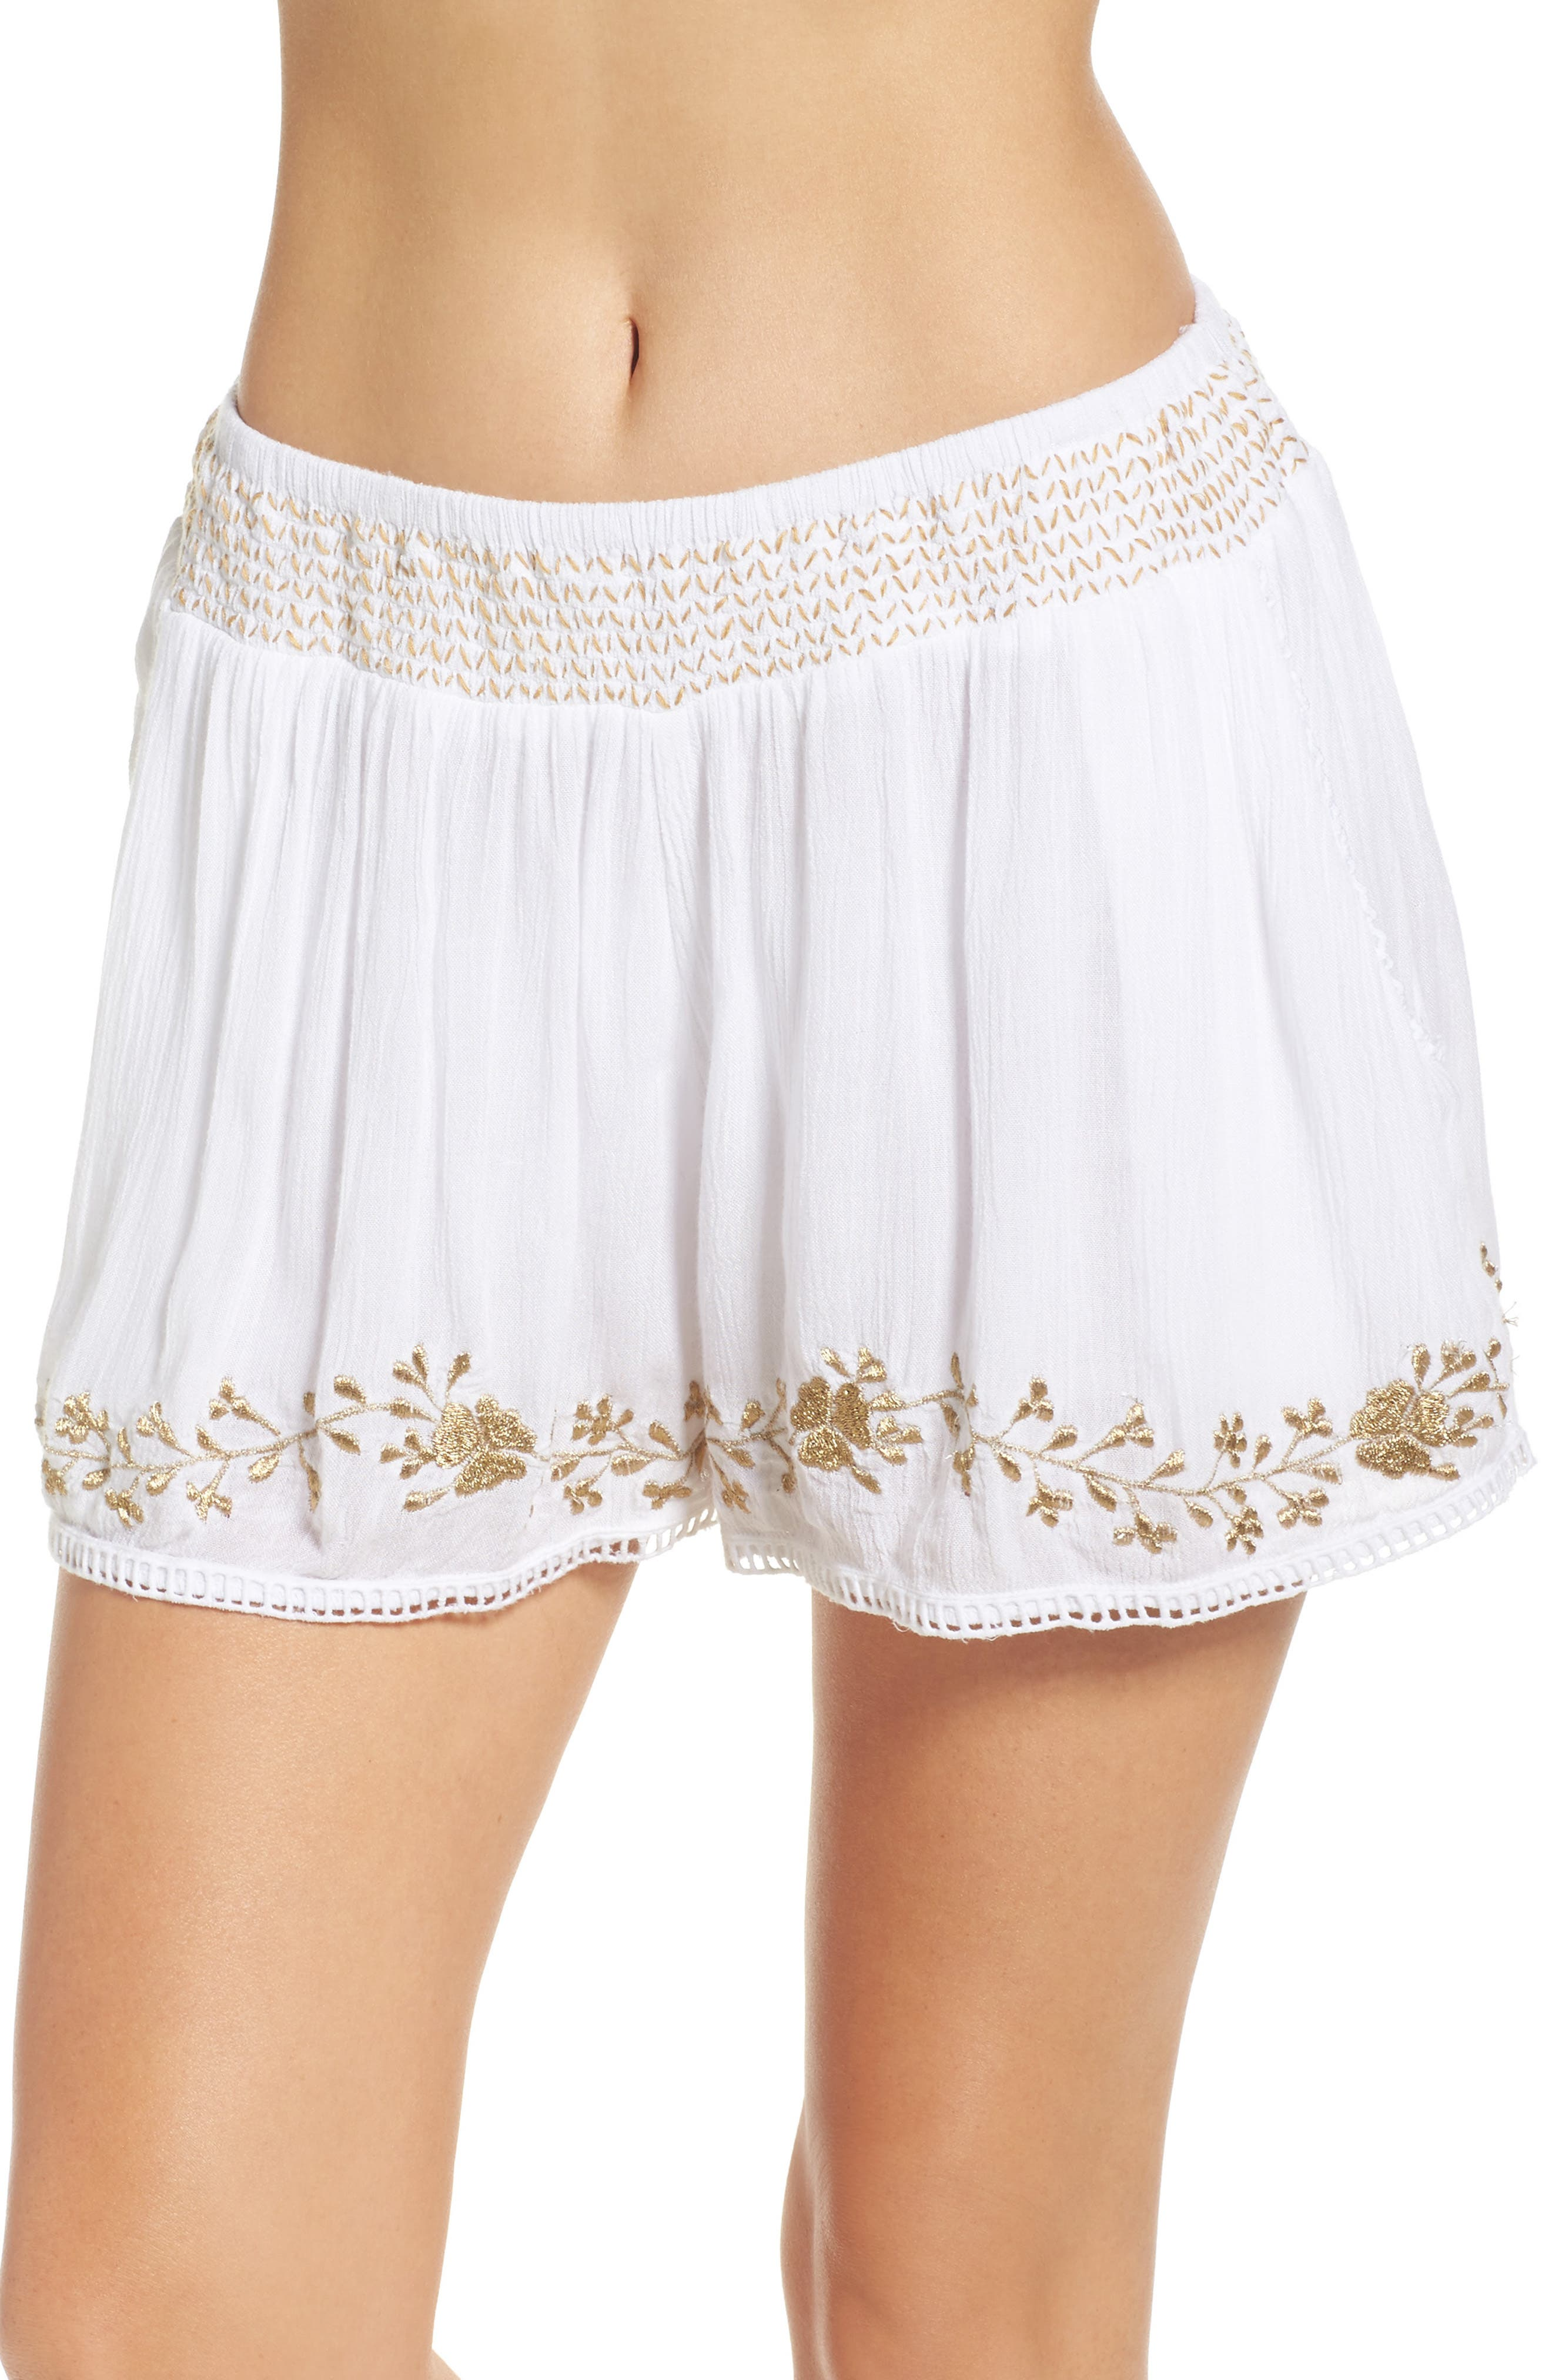 Muche at Muchette Cleopatra Shorts,                         Main,                         color, 100